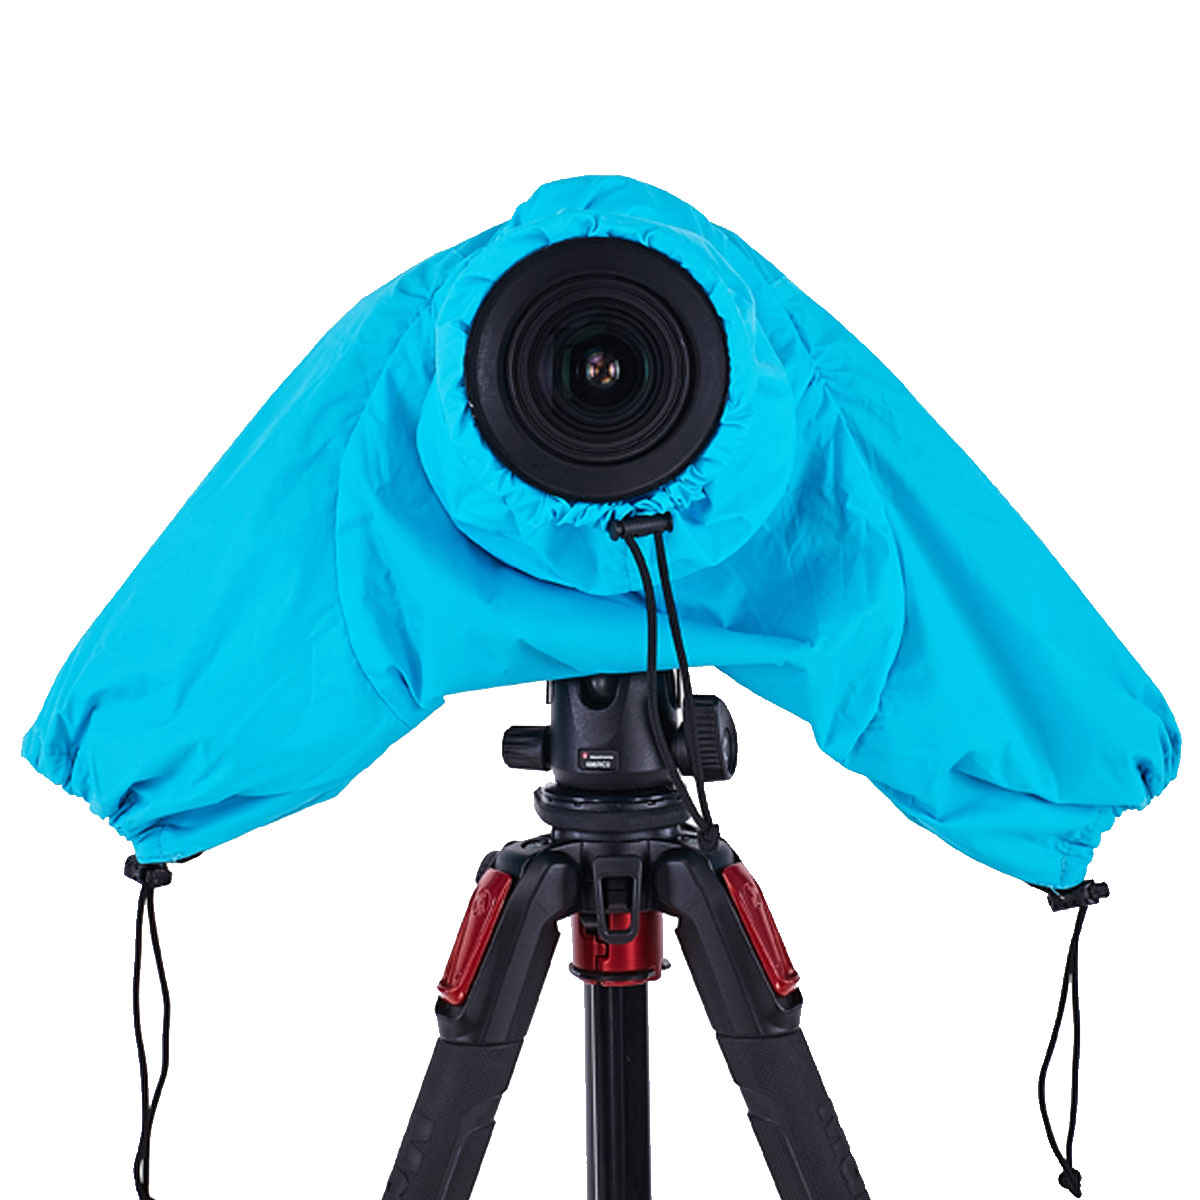 Rain Cover,Rainproof Protector Telephoto Lens Camera Cover Dustproof Camera Raincoat for Canon for for Pendax for